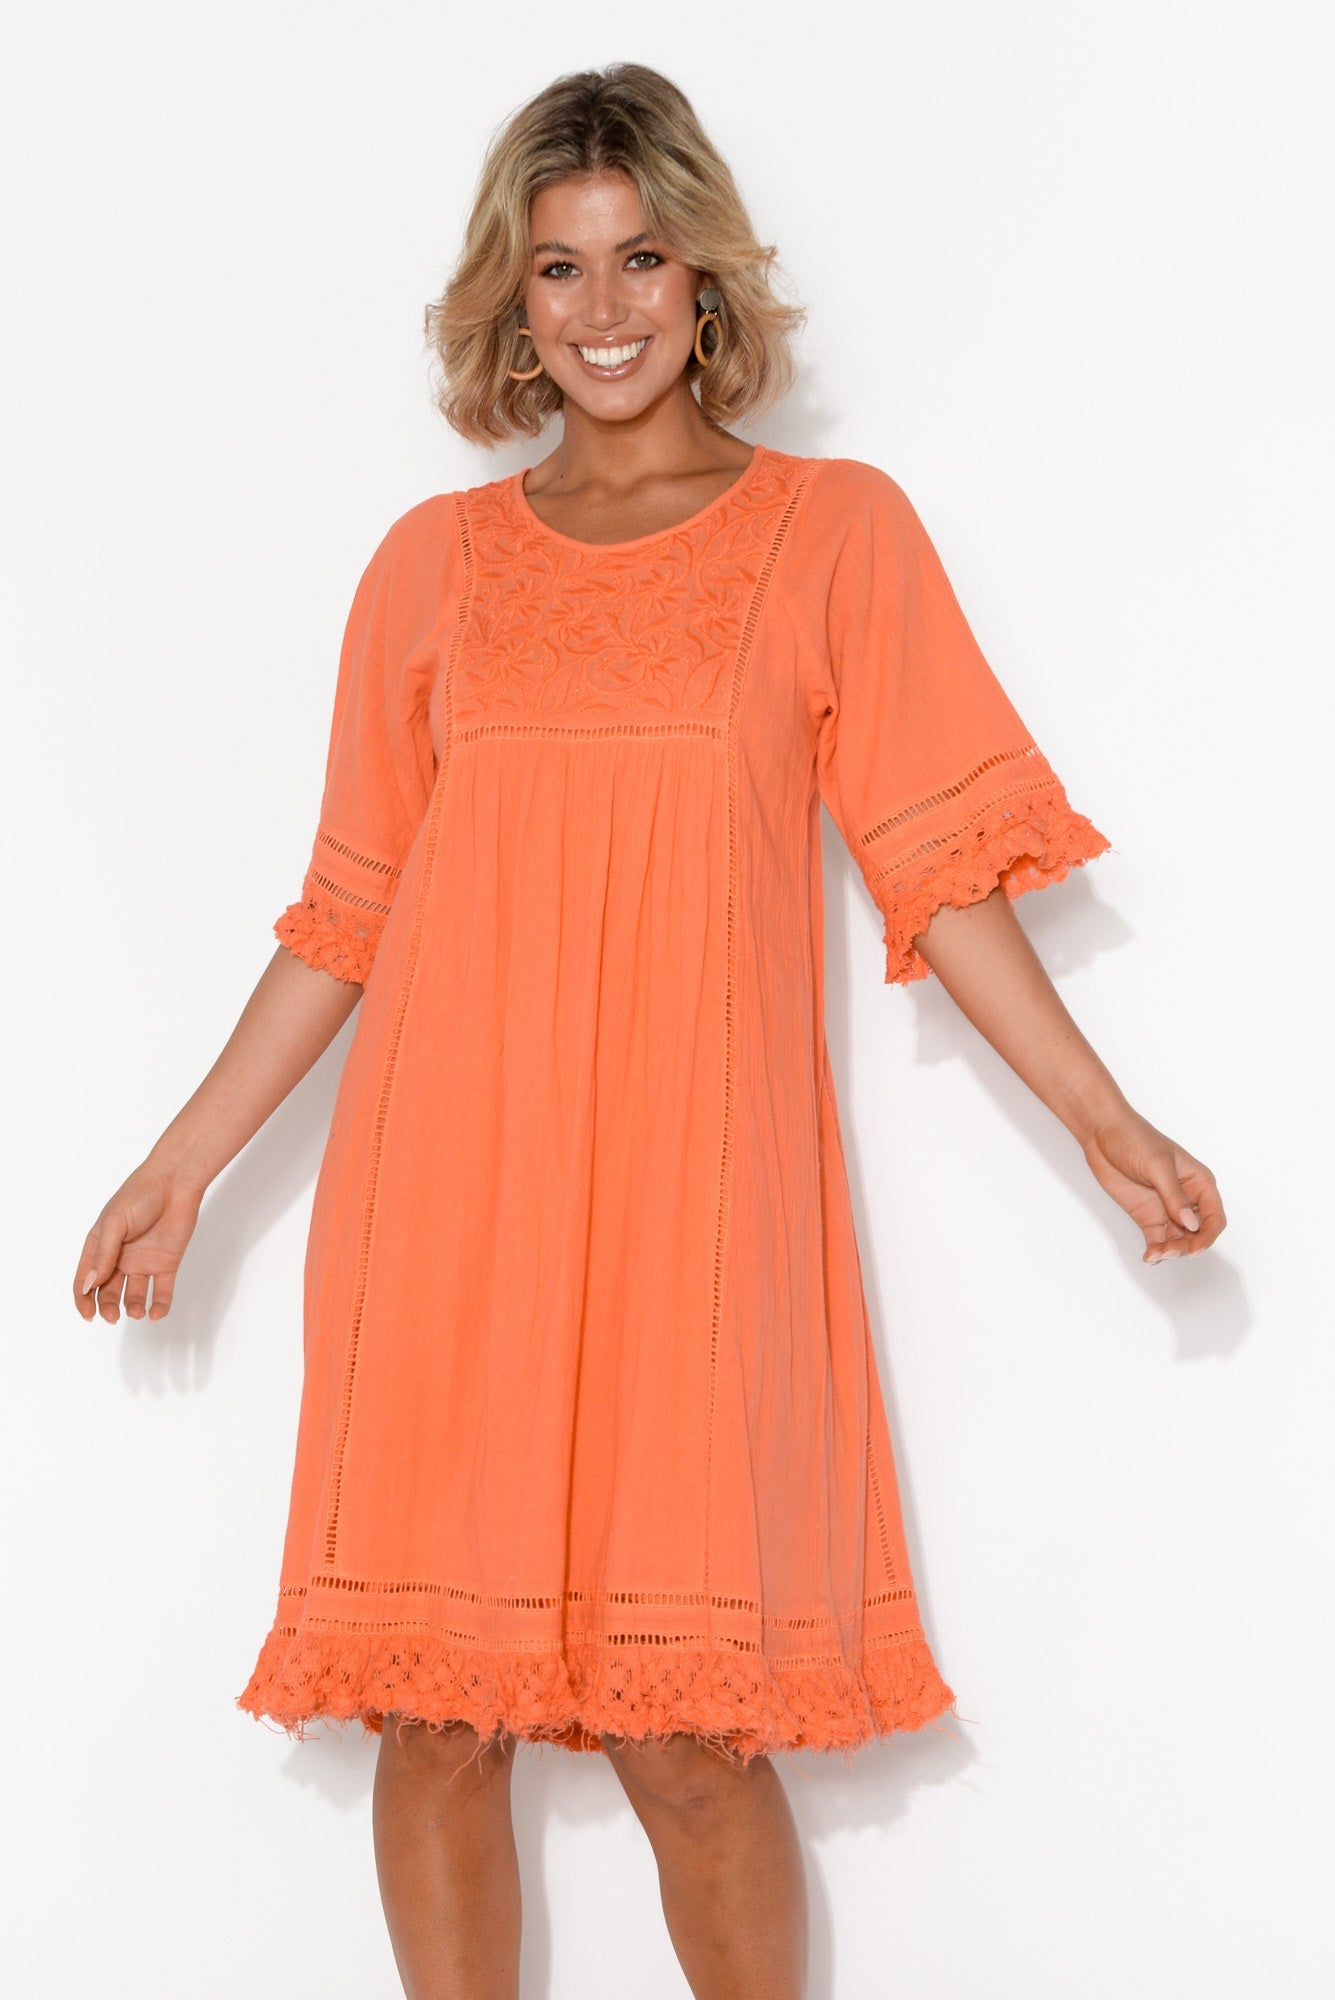 Candace Orange Crochet Cotton Dress